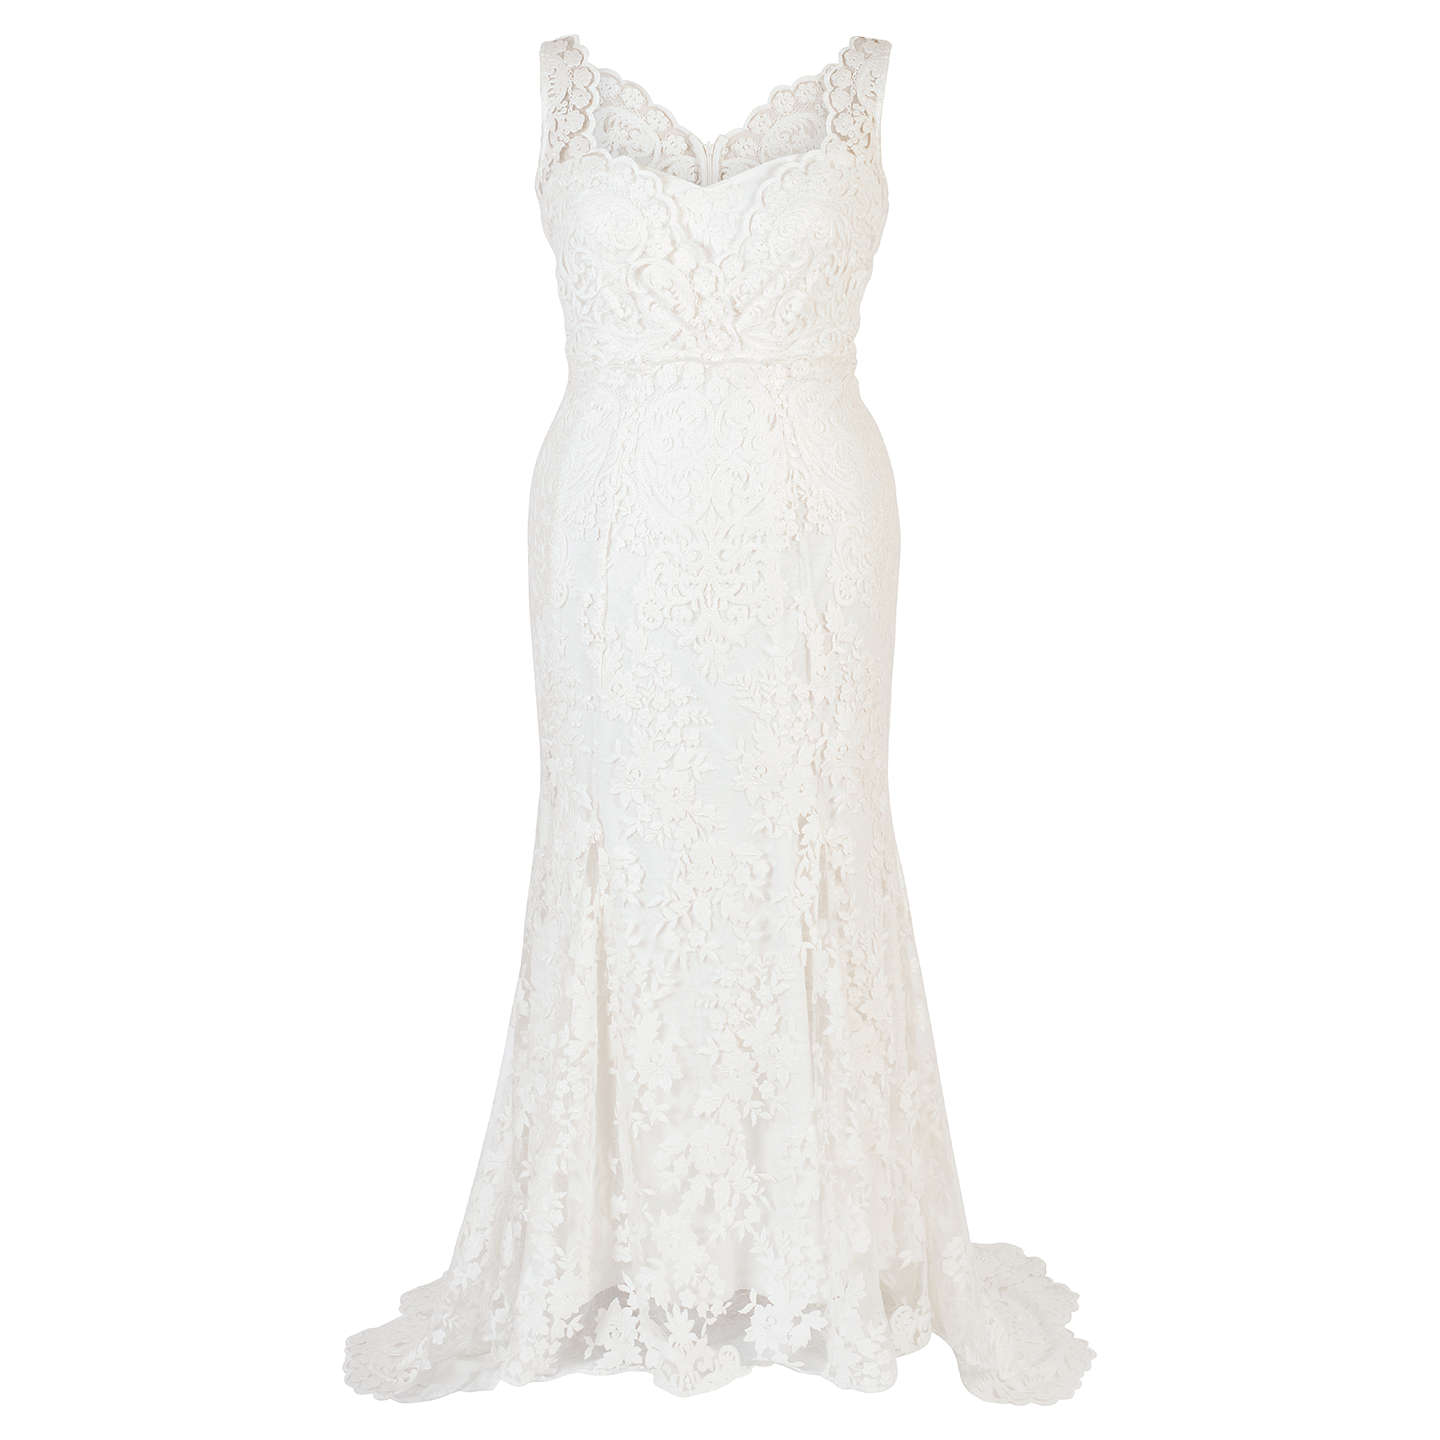 BuyChesca Scallop Lace Wedding Dress, Ivory, 12 Online at johnlewis.com